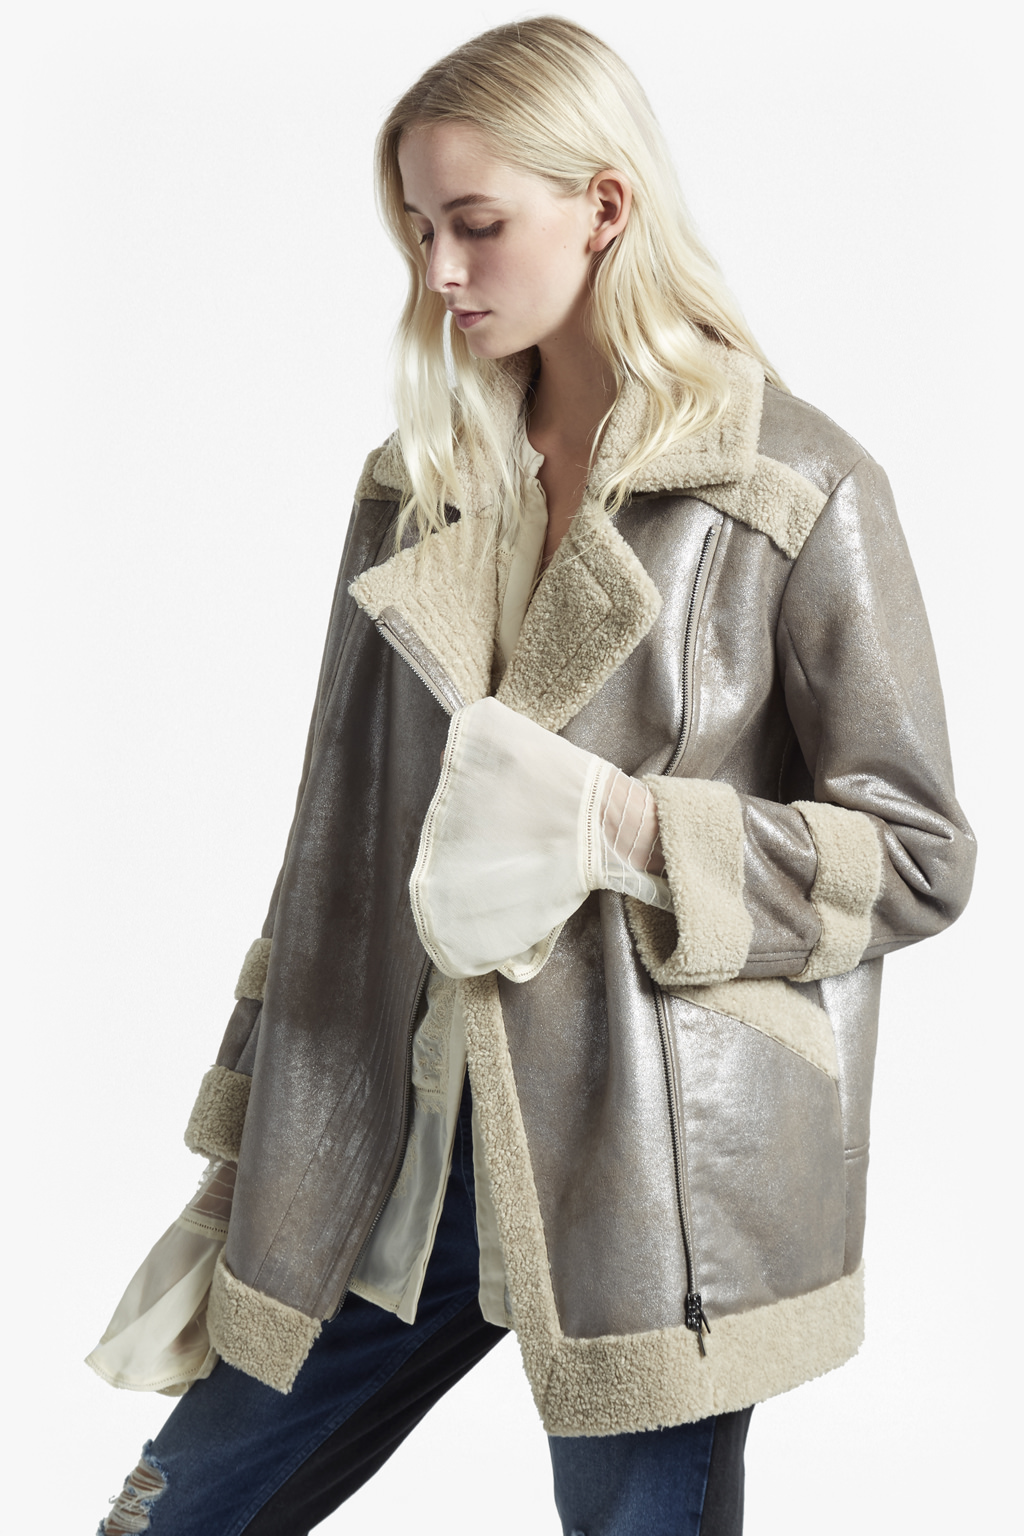 How to clean the sheepskin coat at home